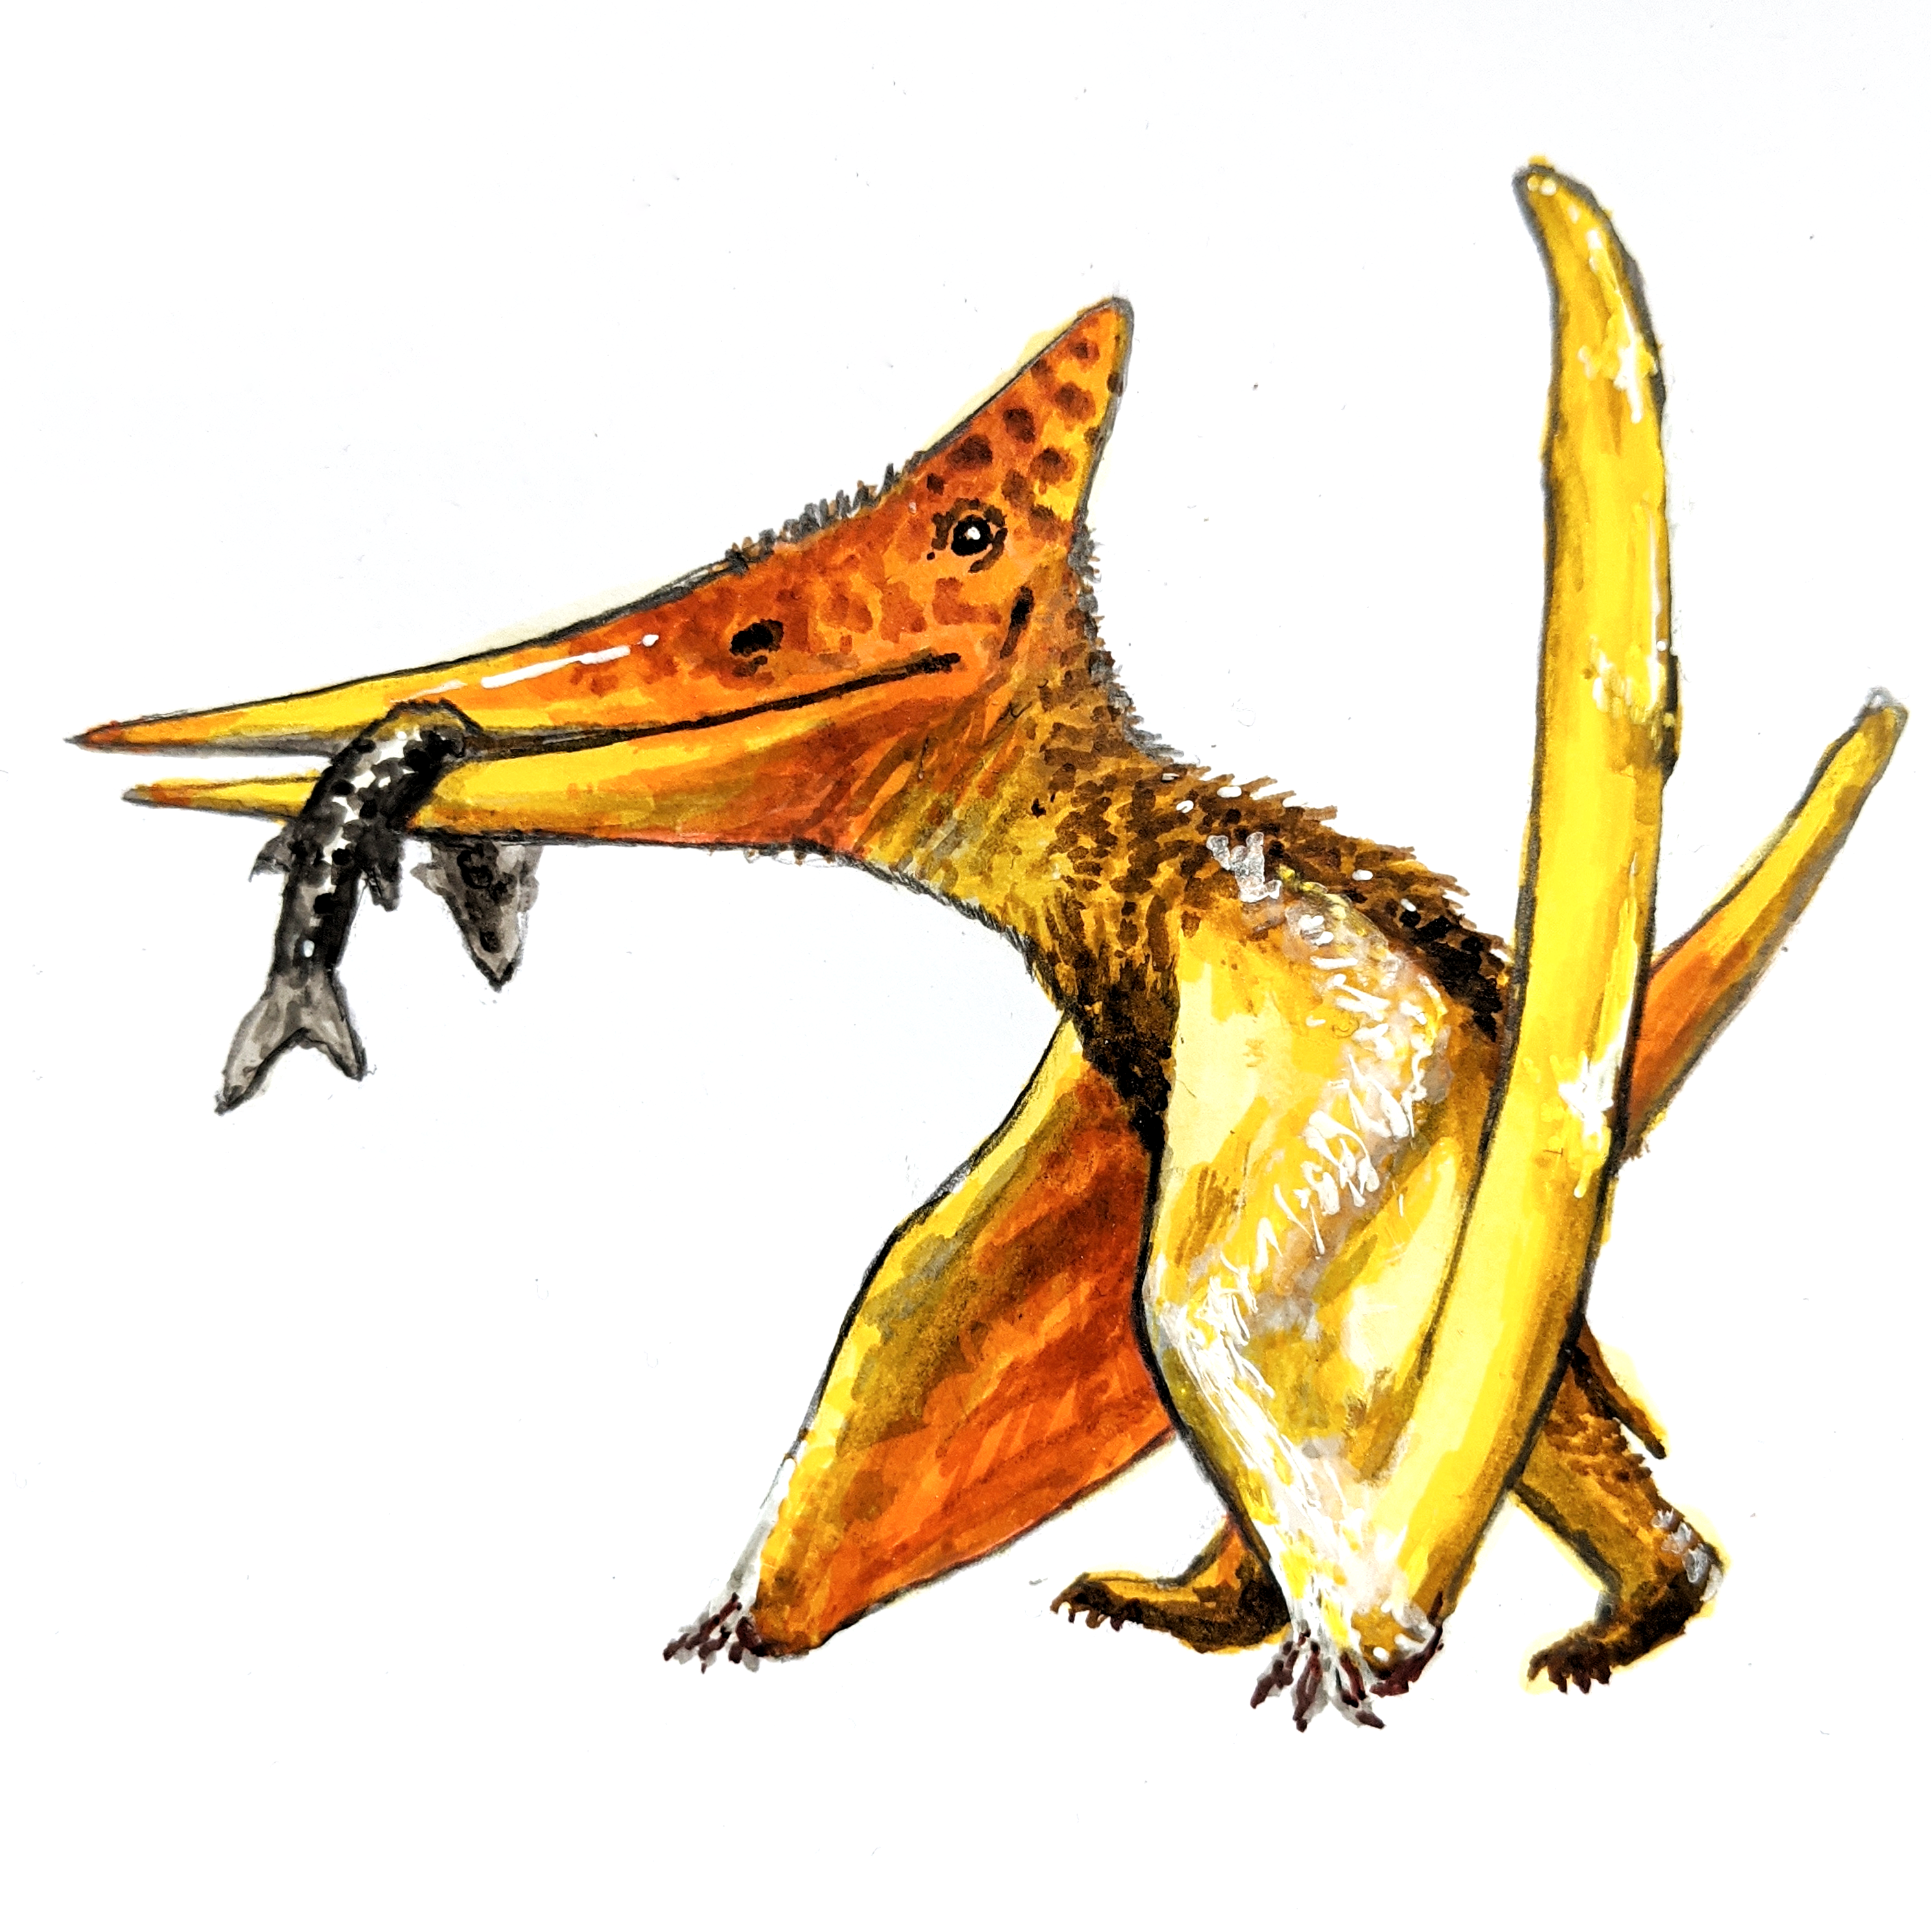 Orange and yellow Pteranodon, an ancient reptile